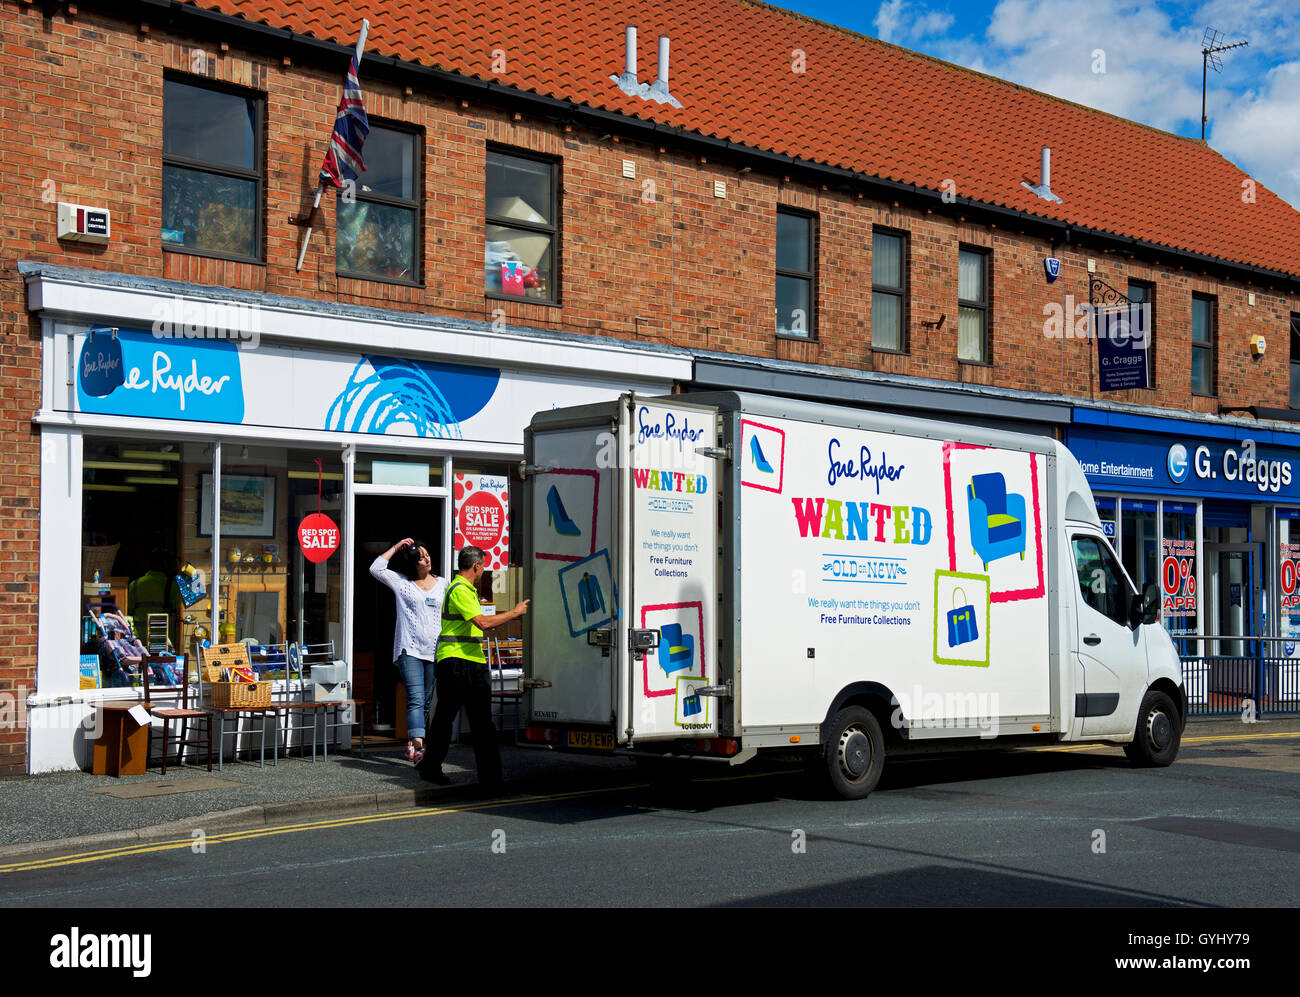 Delivery van outside Sue Ryder charity shop, England UK - Stock Image